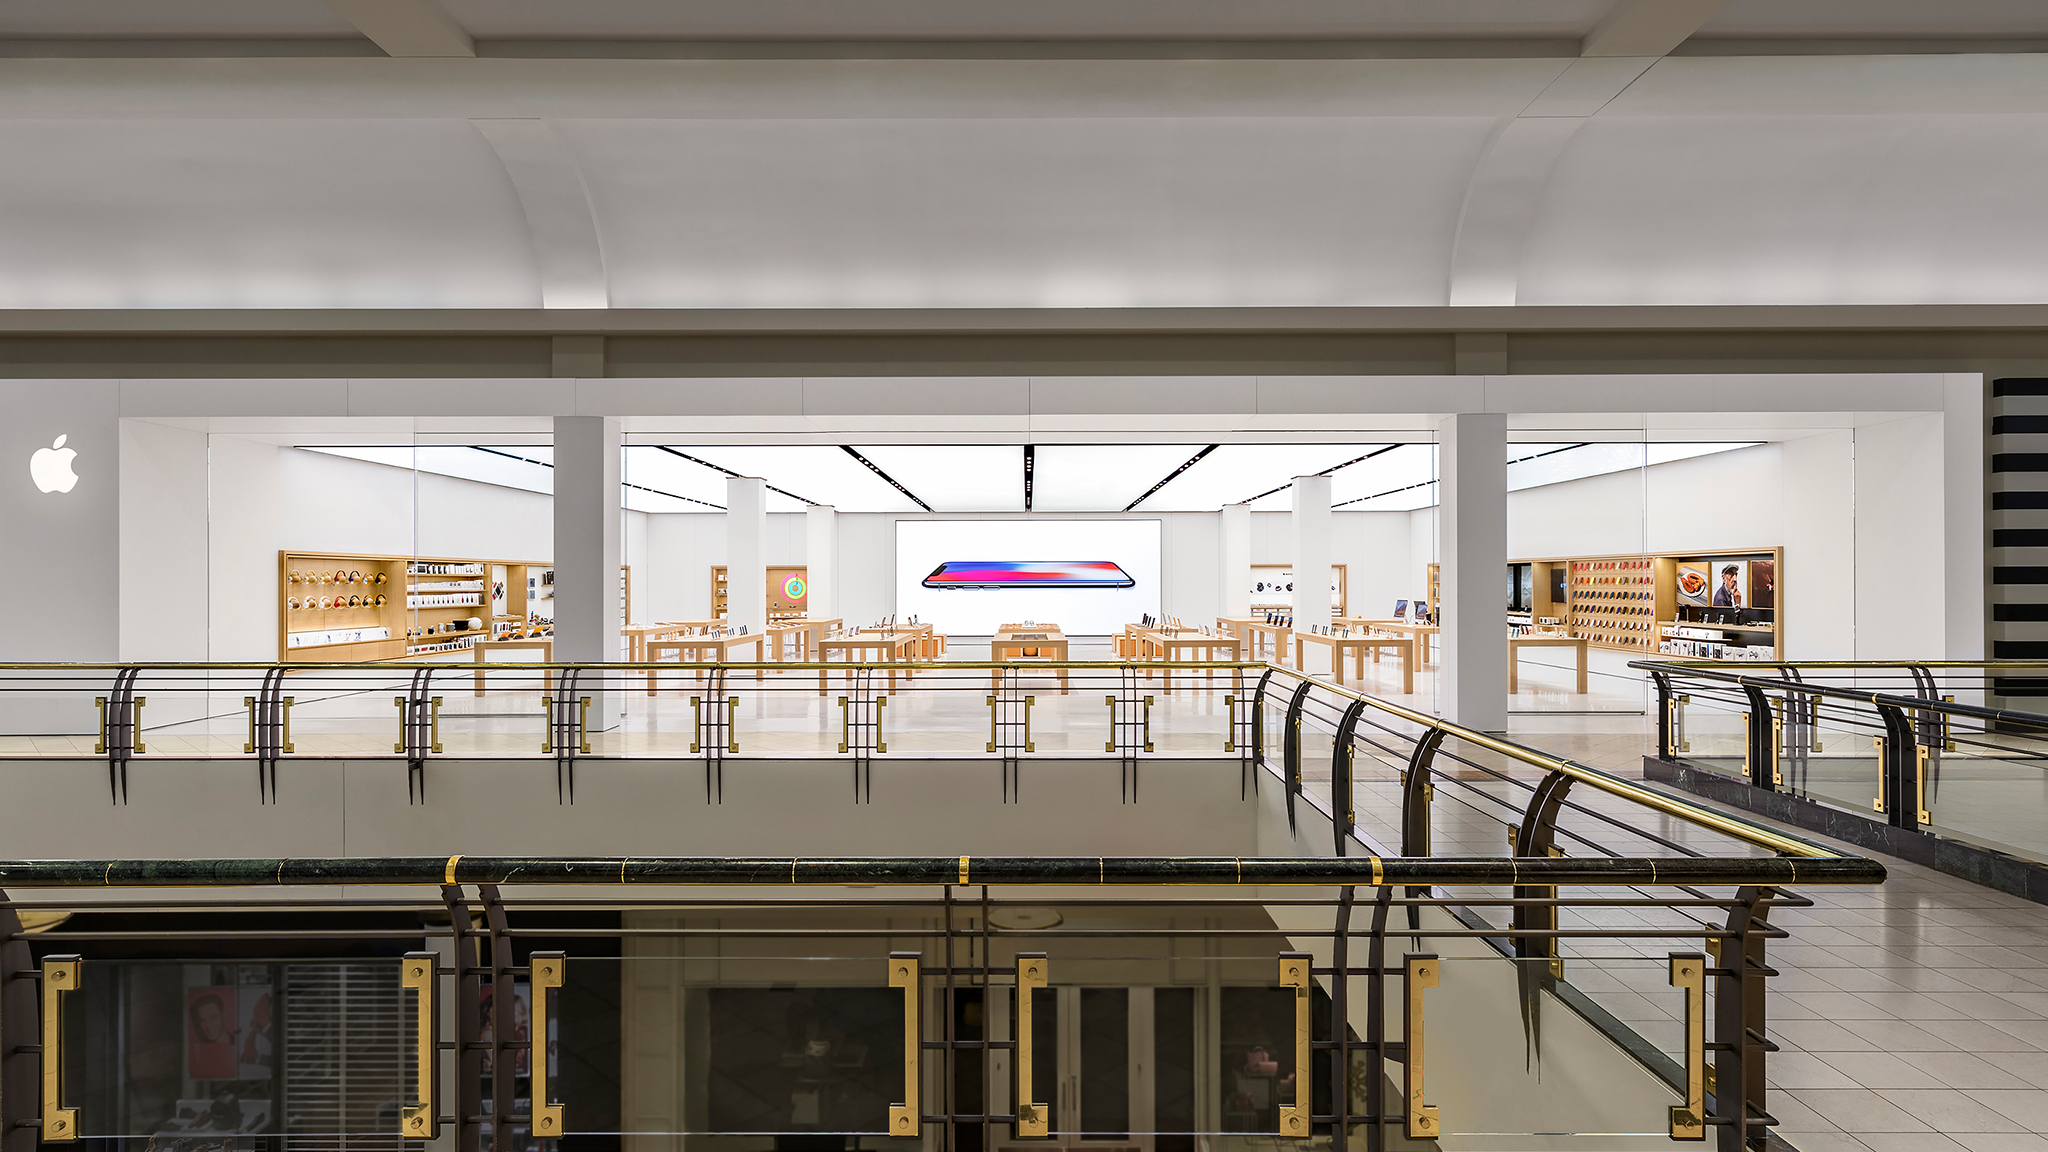 Apple Crabtree Valley Mall 4325 Glenwood Ave Raleigh Nc